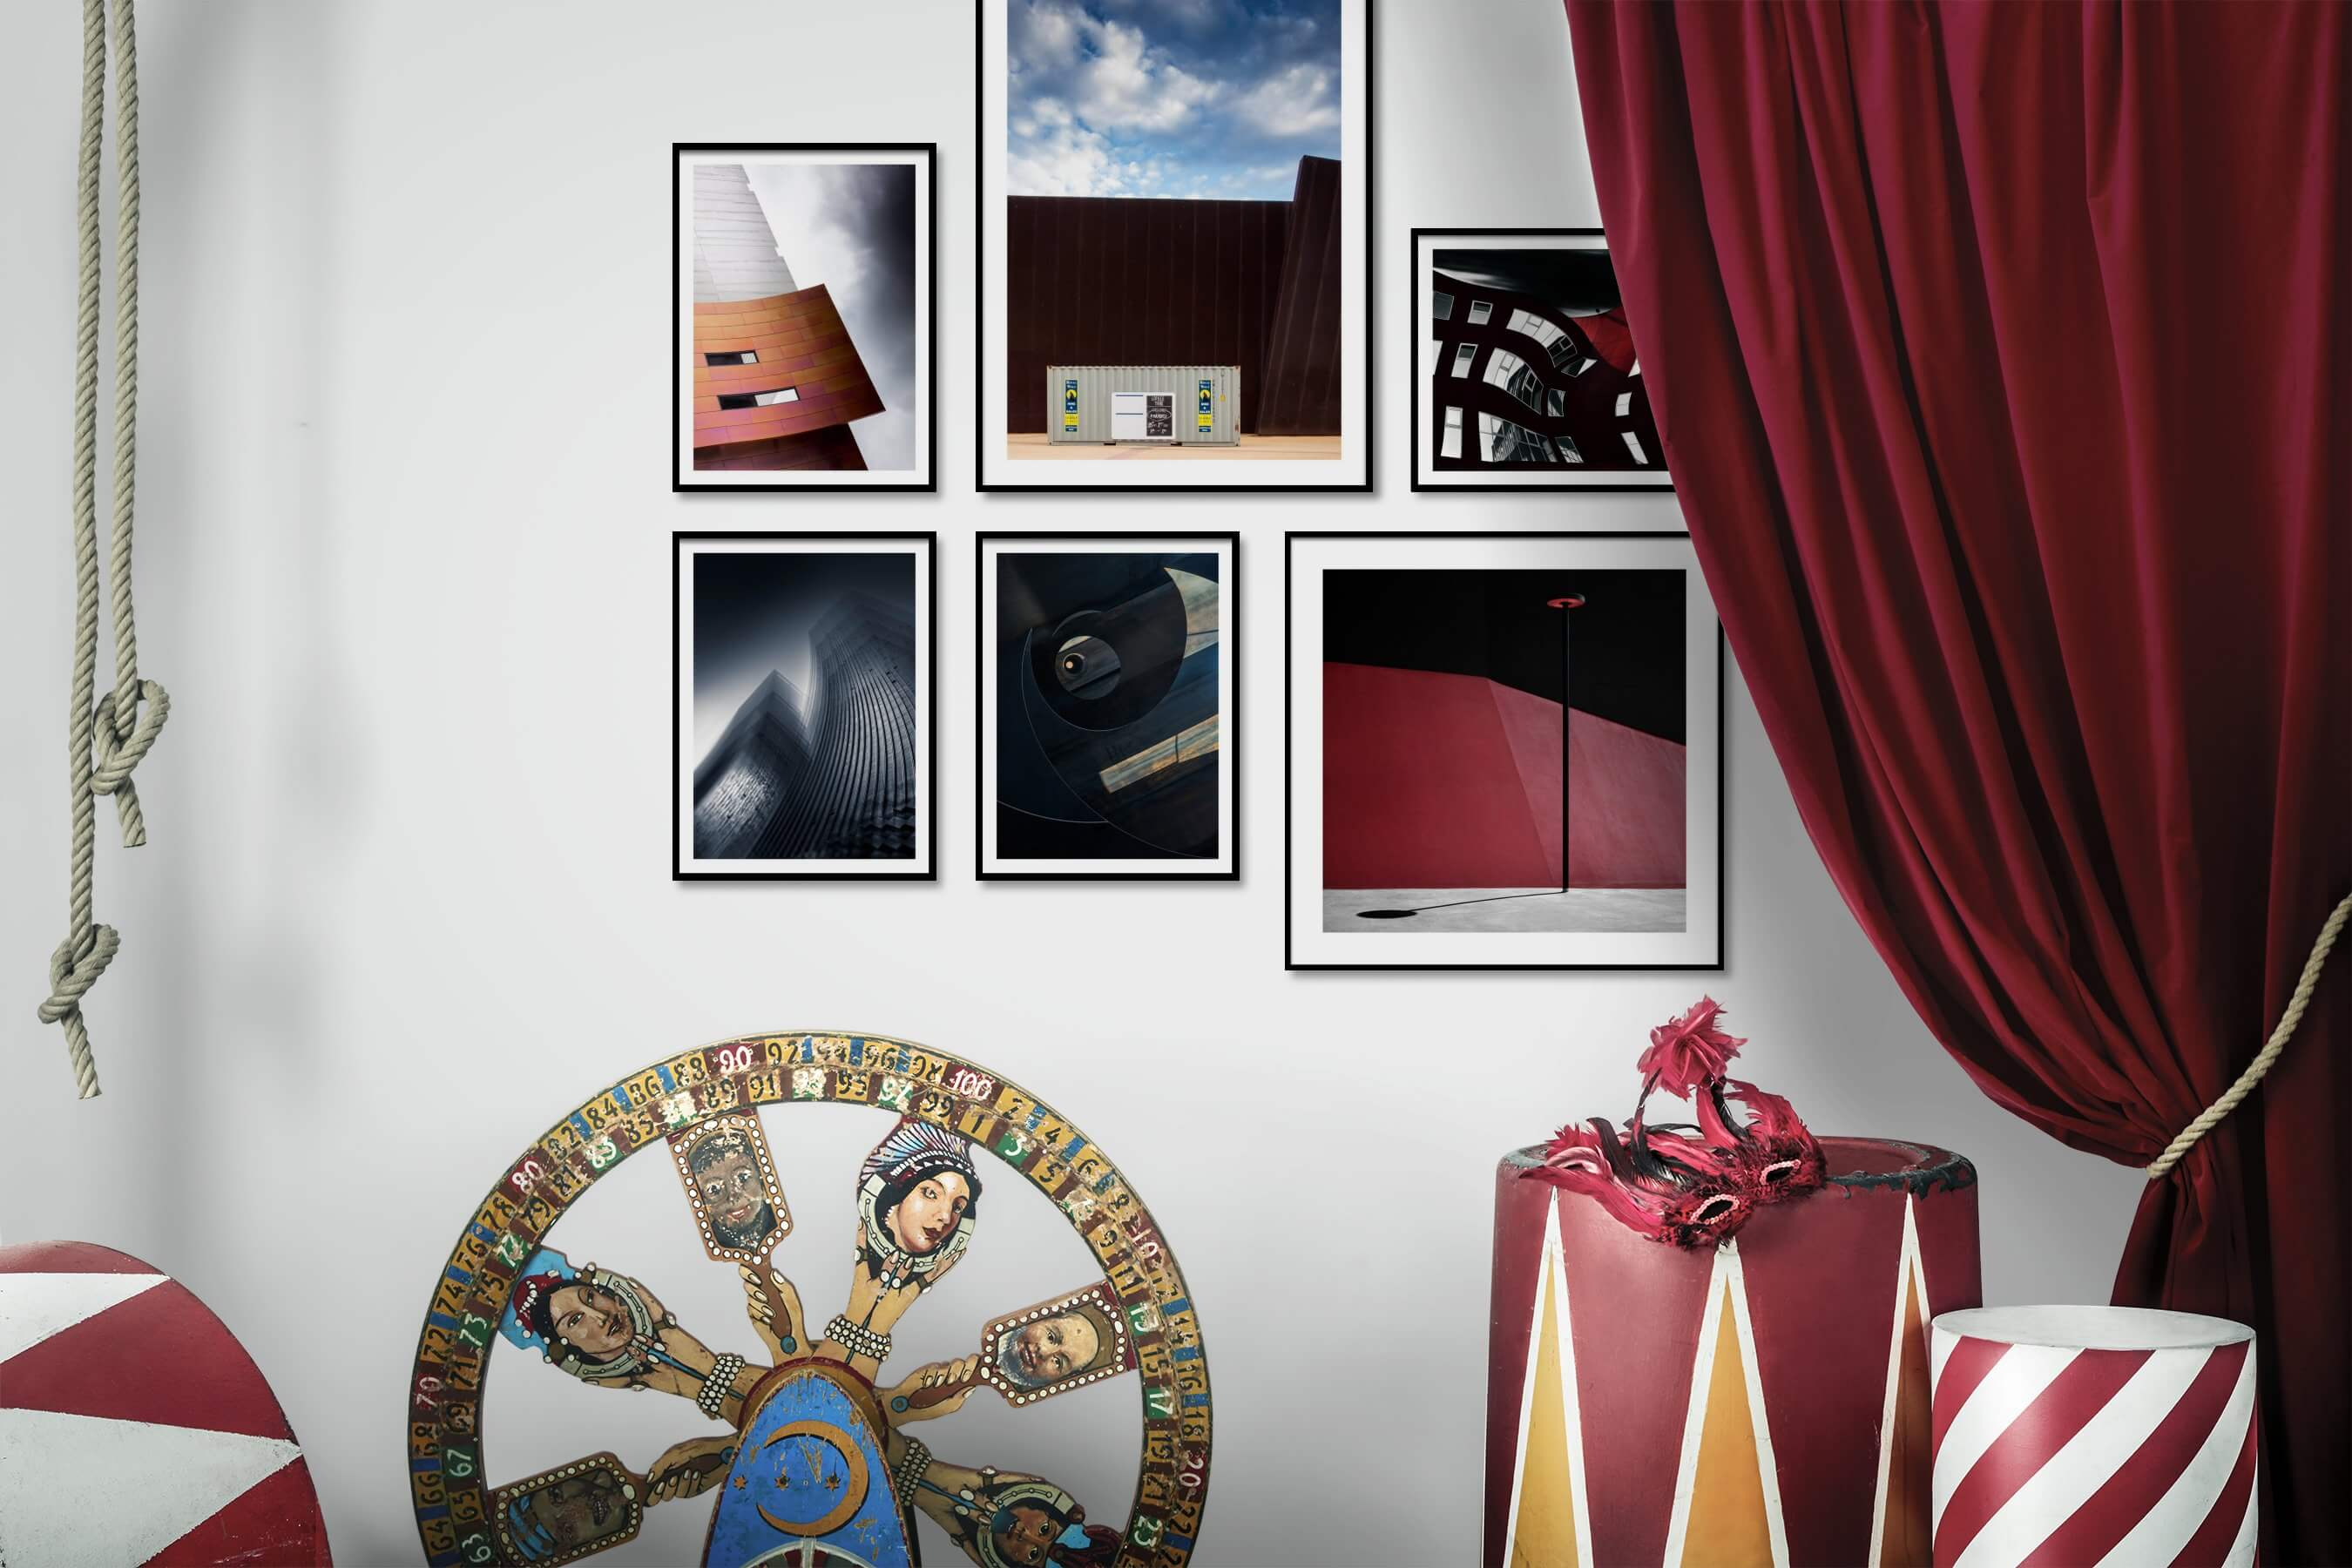 Gallery wall idea with six framed pictures arranged on a wall depicting For the Moderate, Black & White, City Life, and For the Minimalist